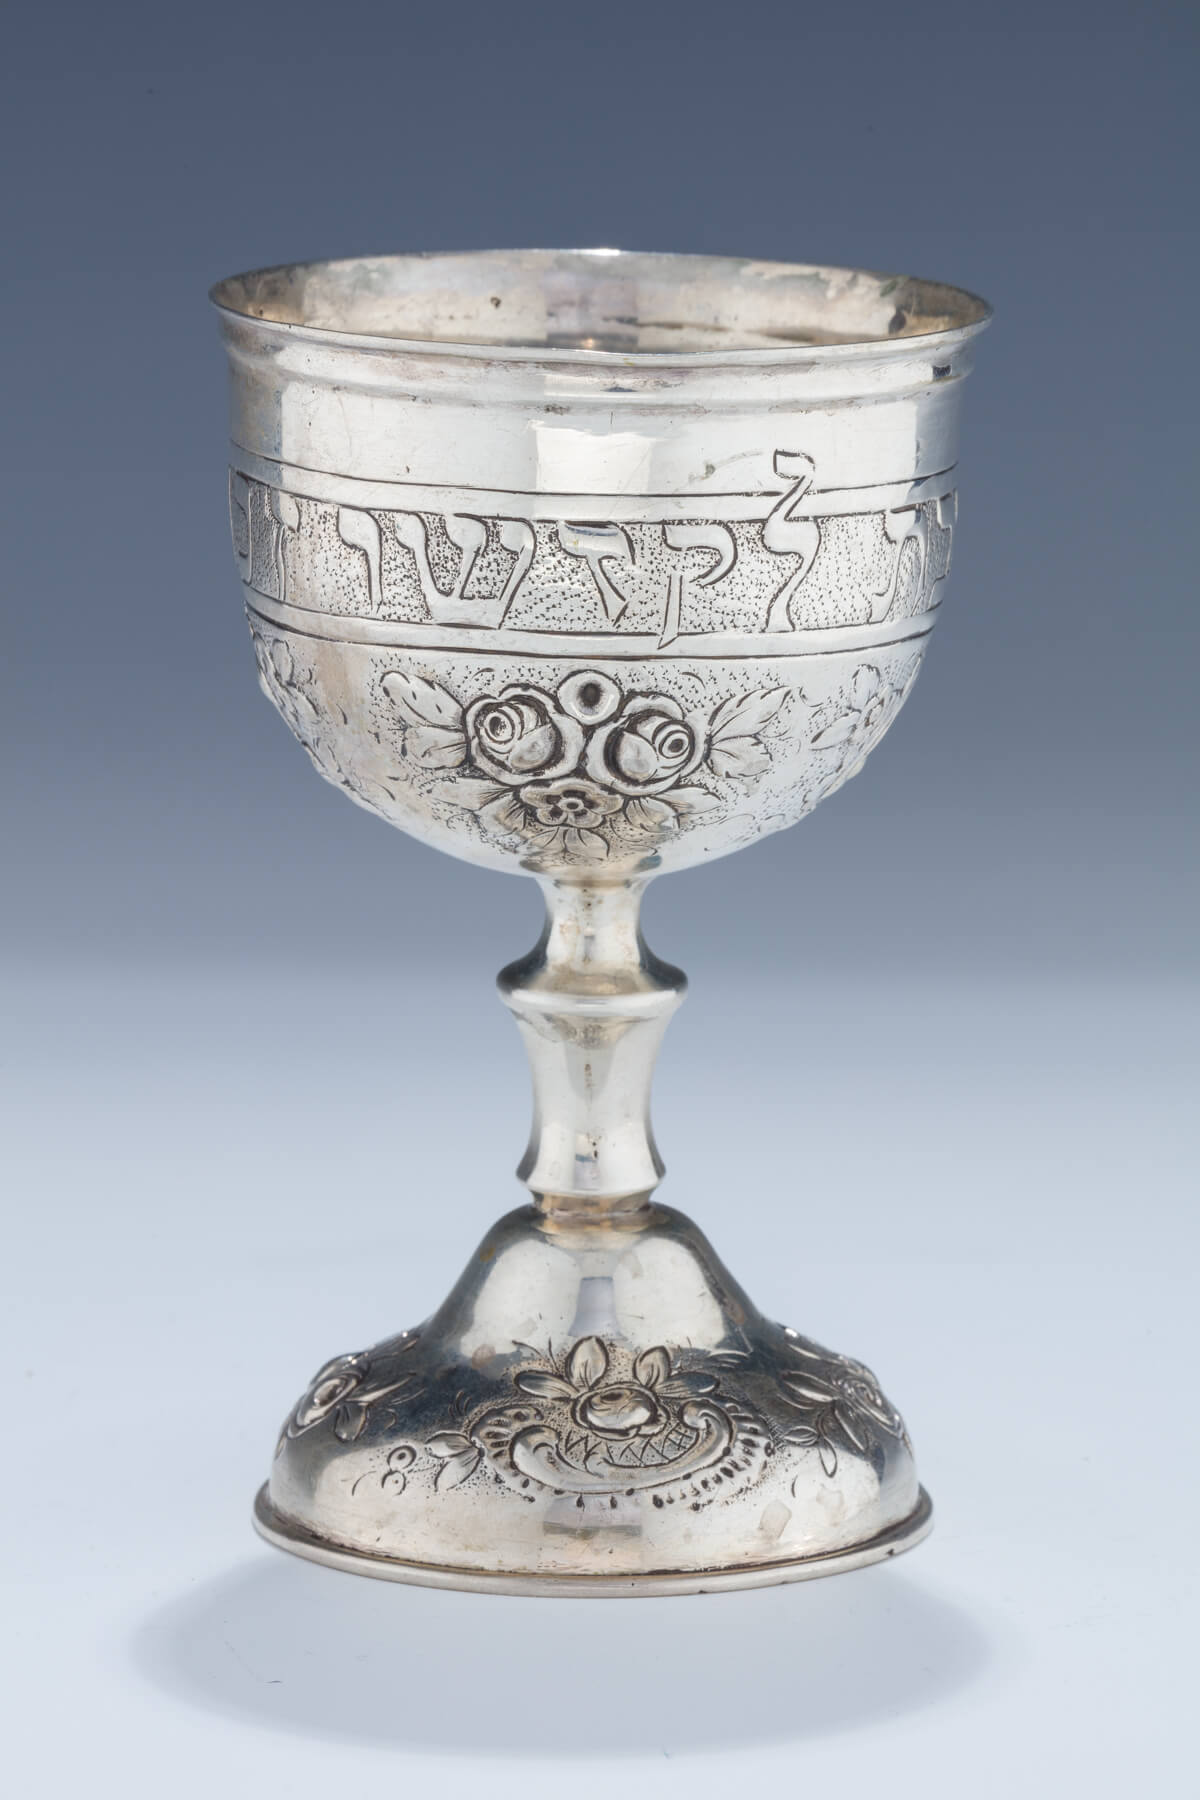 109. A Large Silver Kiddush Goblet